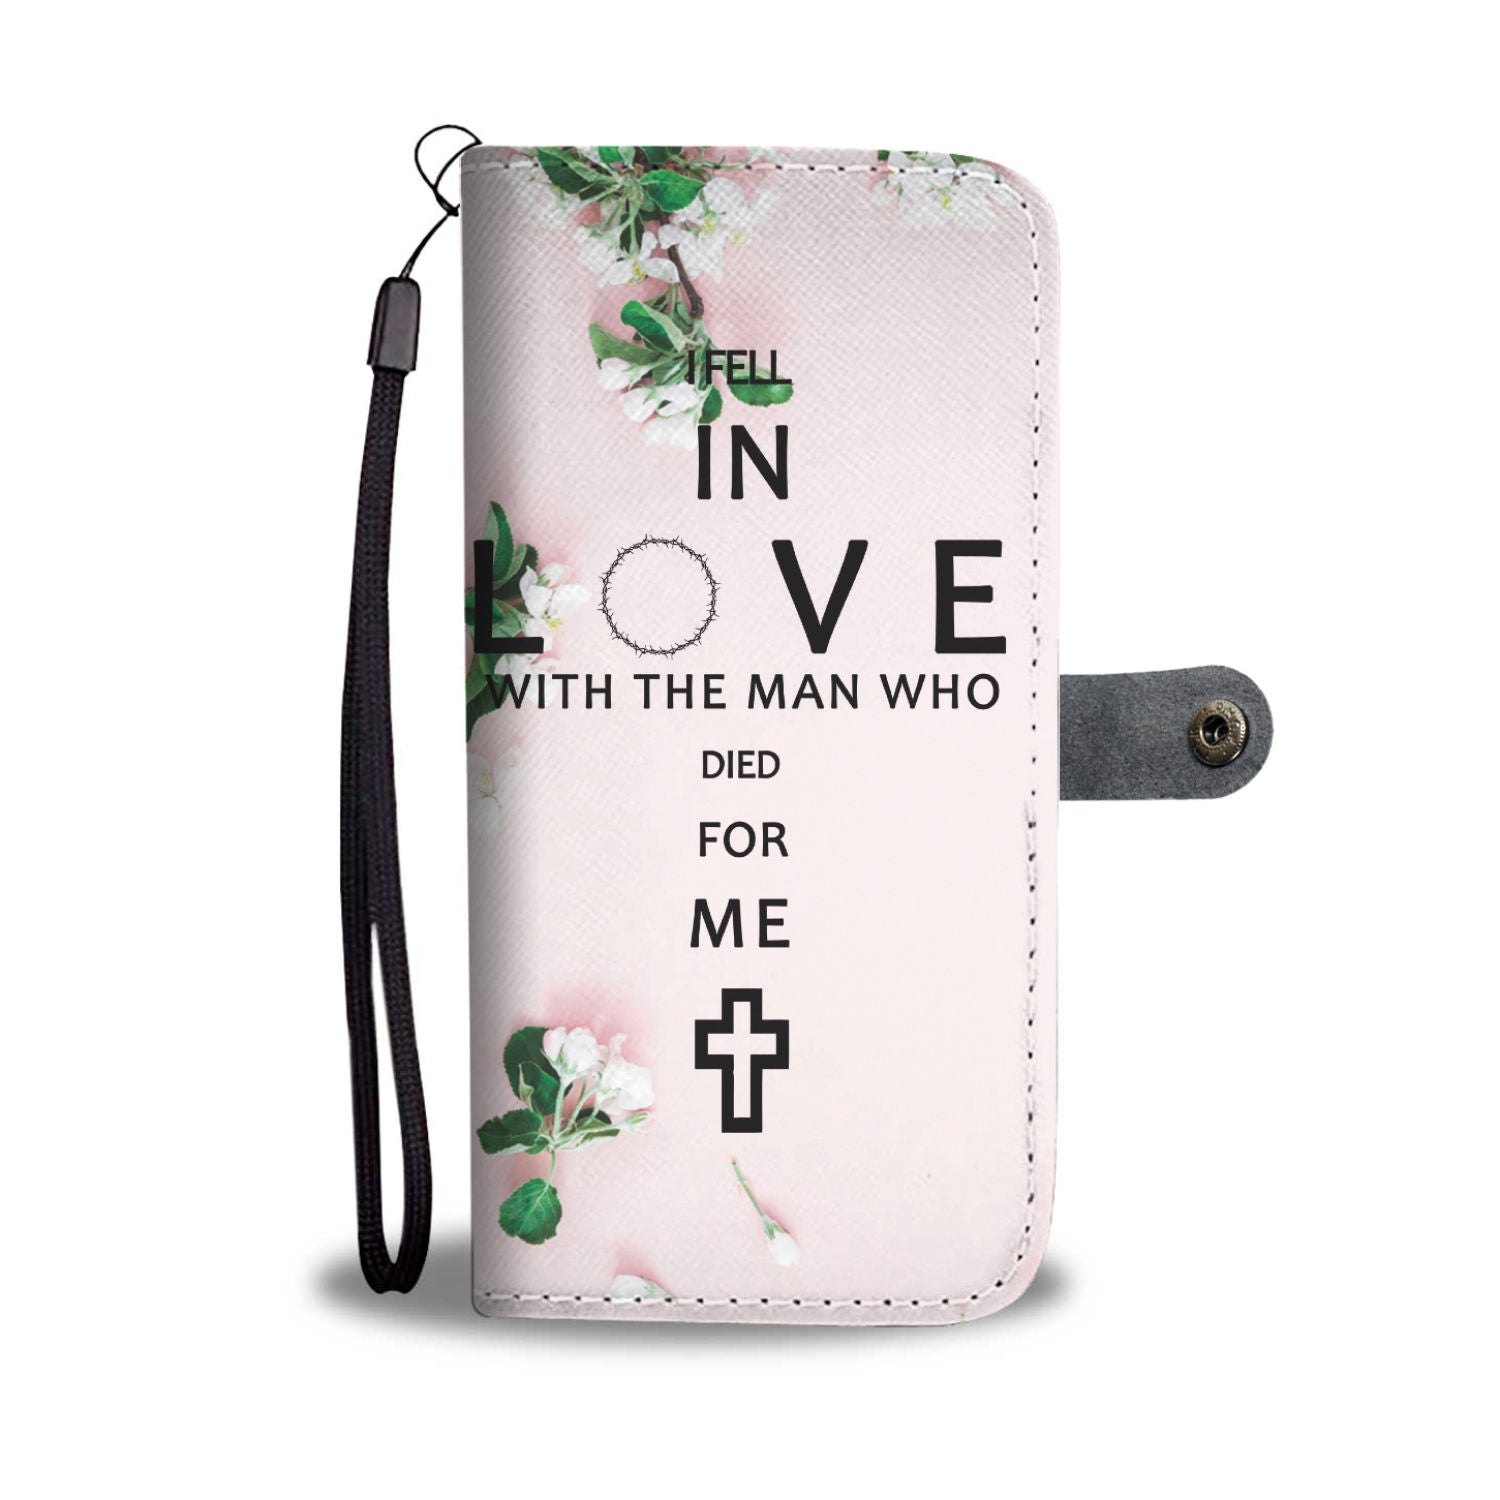 VIRA Leather-like Wallet Case For Jesus Lovers